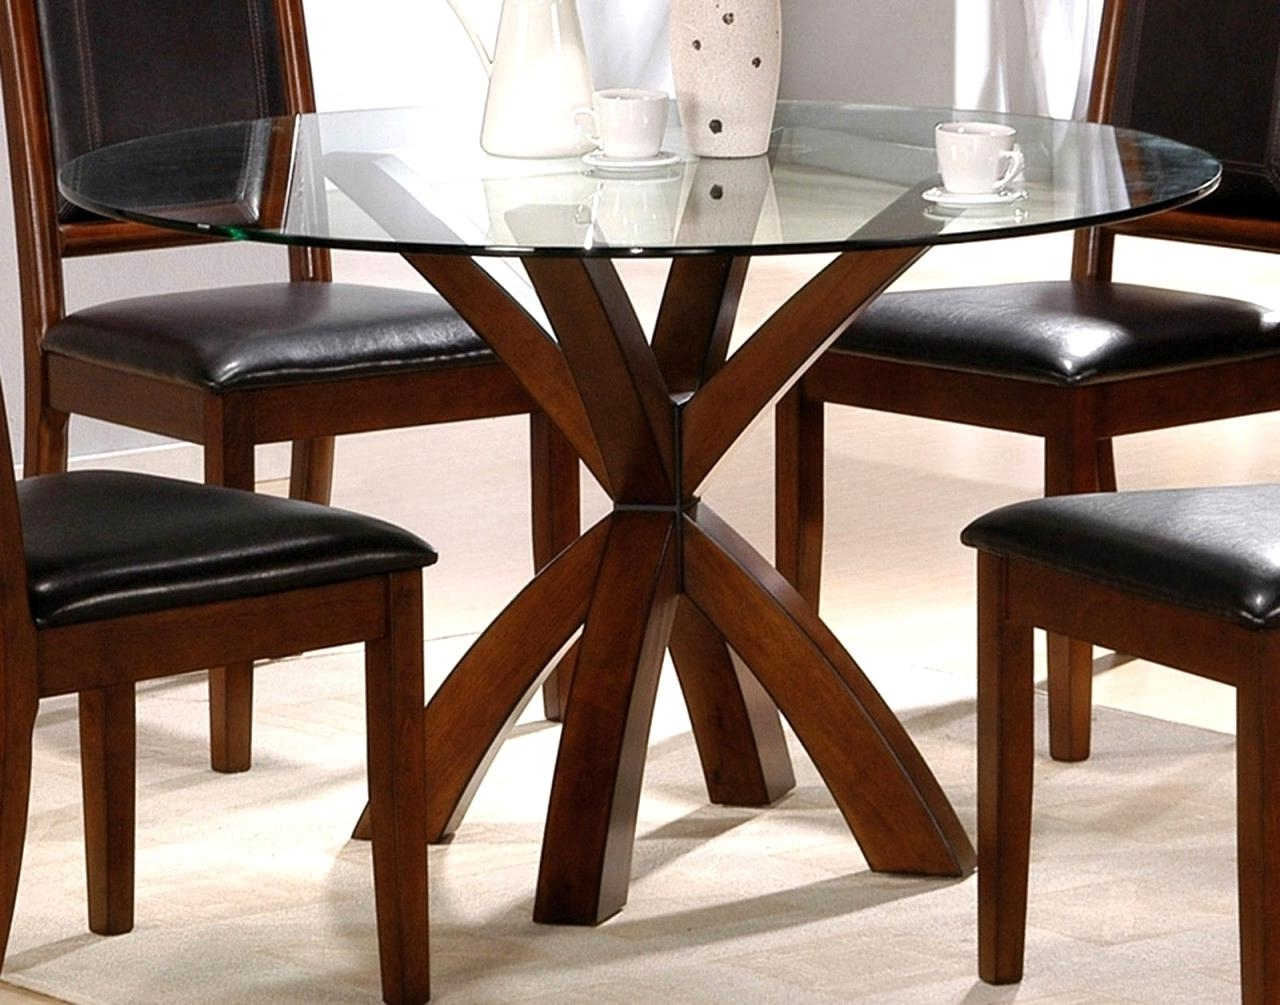 Incredible-Oak-Base-Dining-Table-Simple-Round-Glass-Top-Dining with Popular Round Glass And Oak Dining Tables